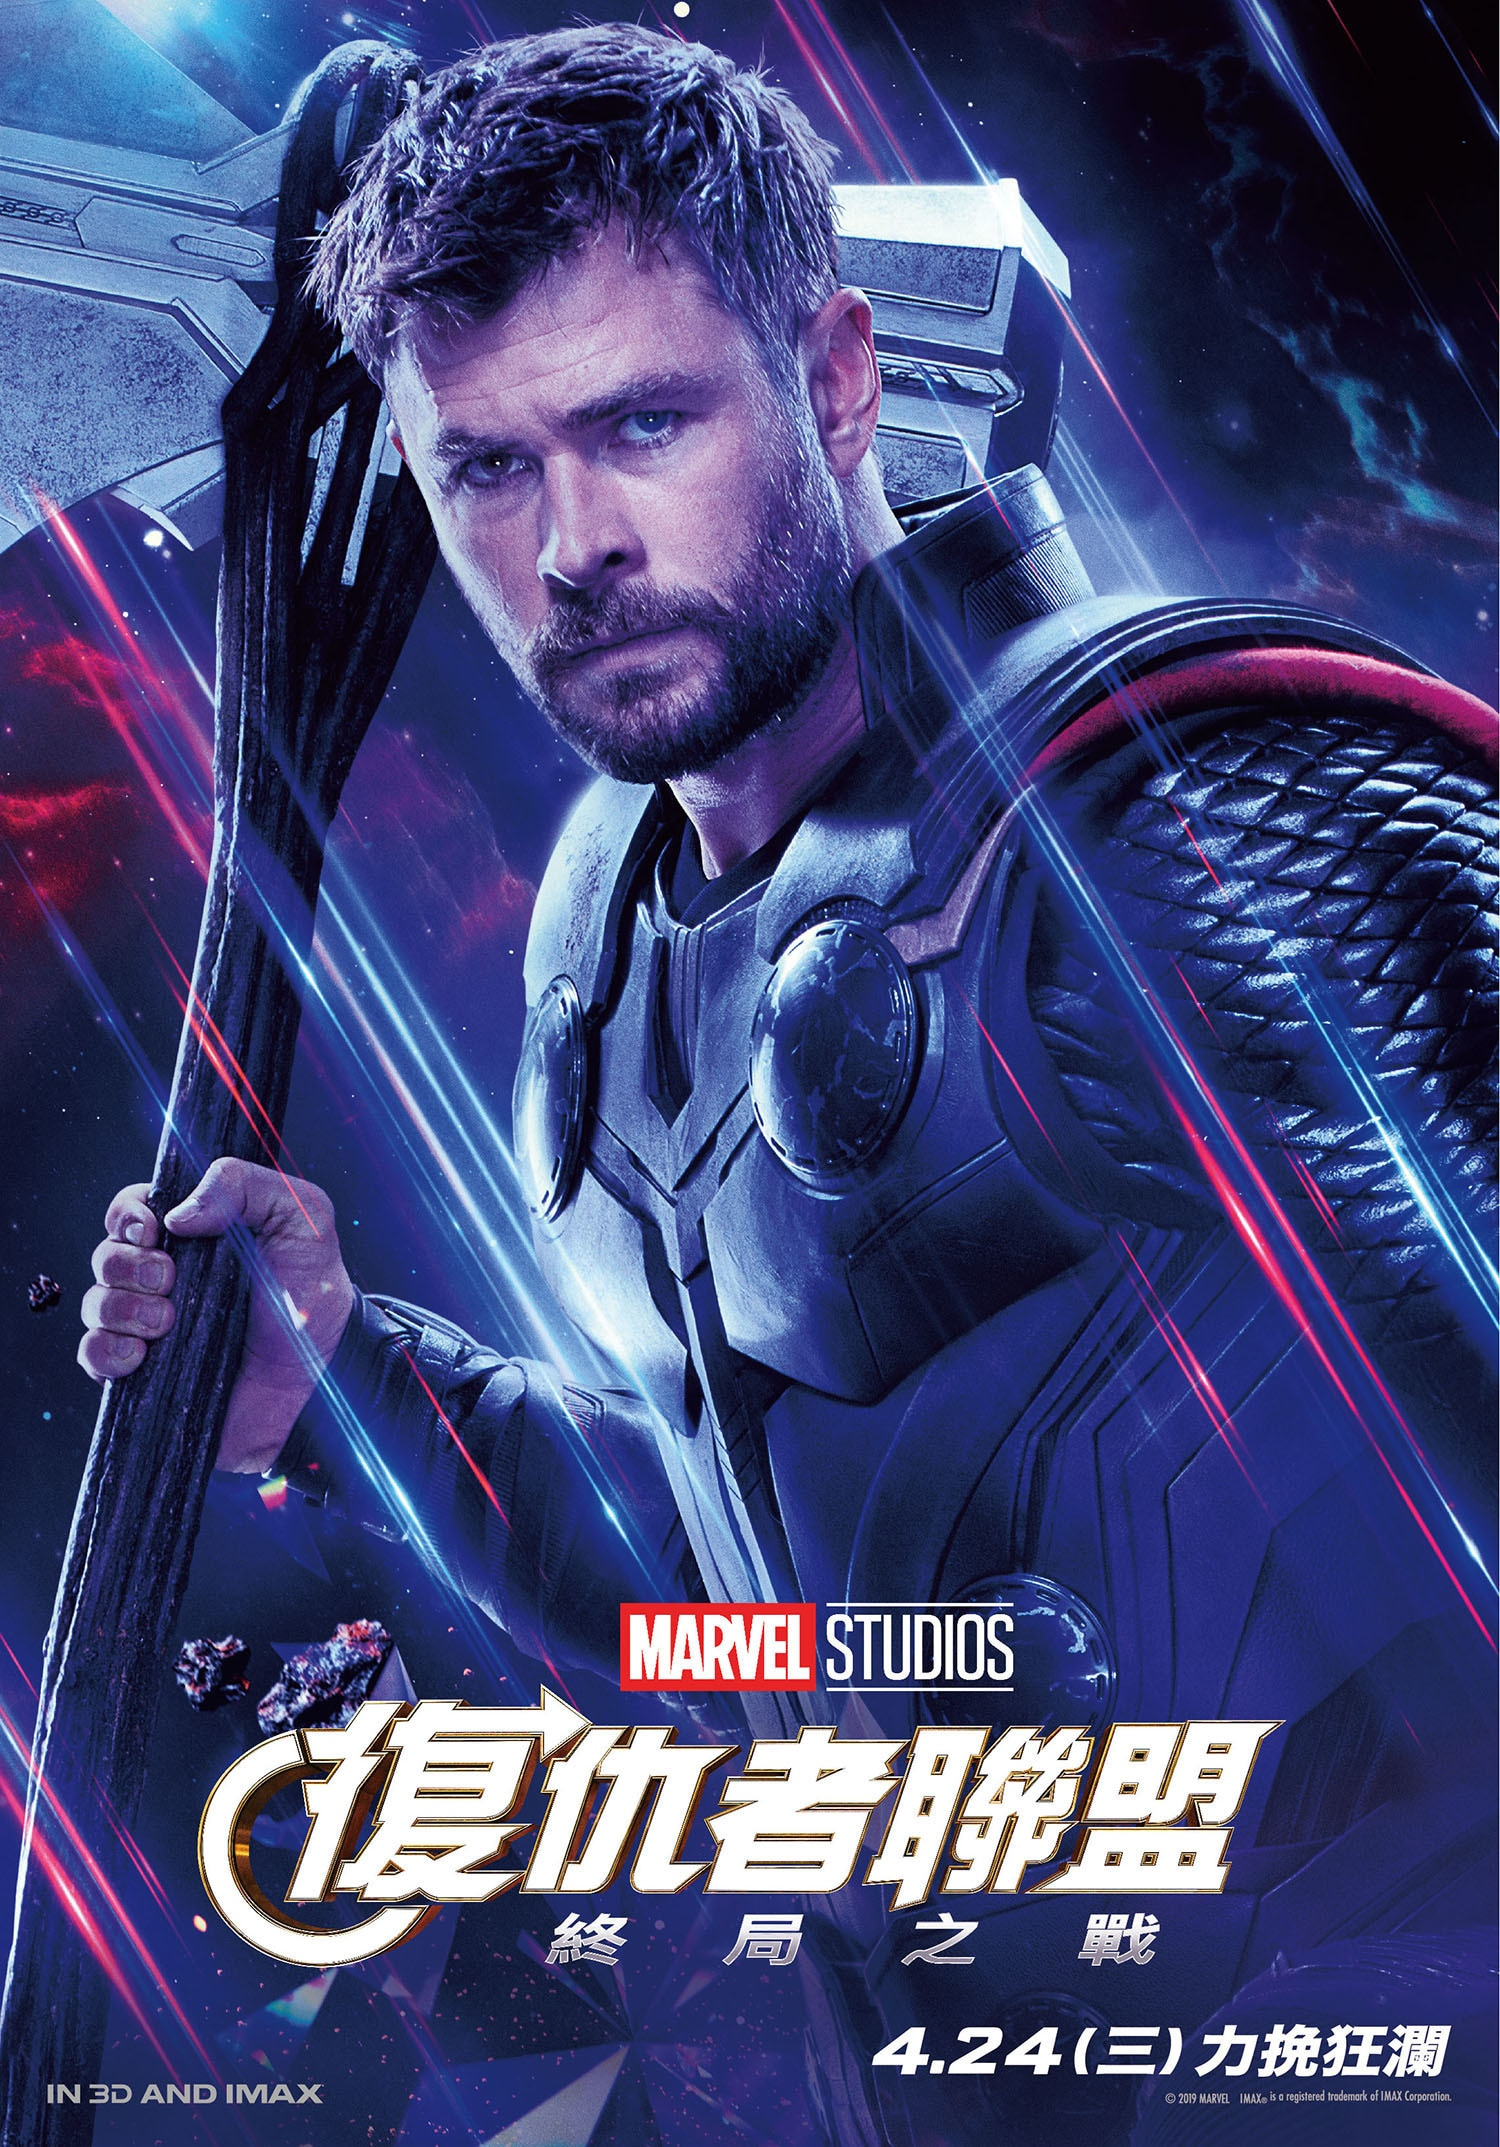 Avengers:End Game - Thor